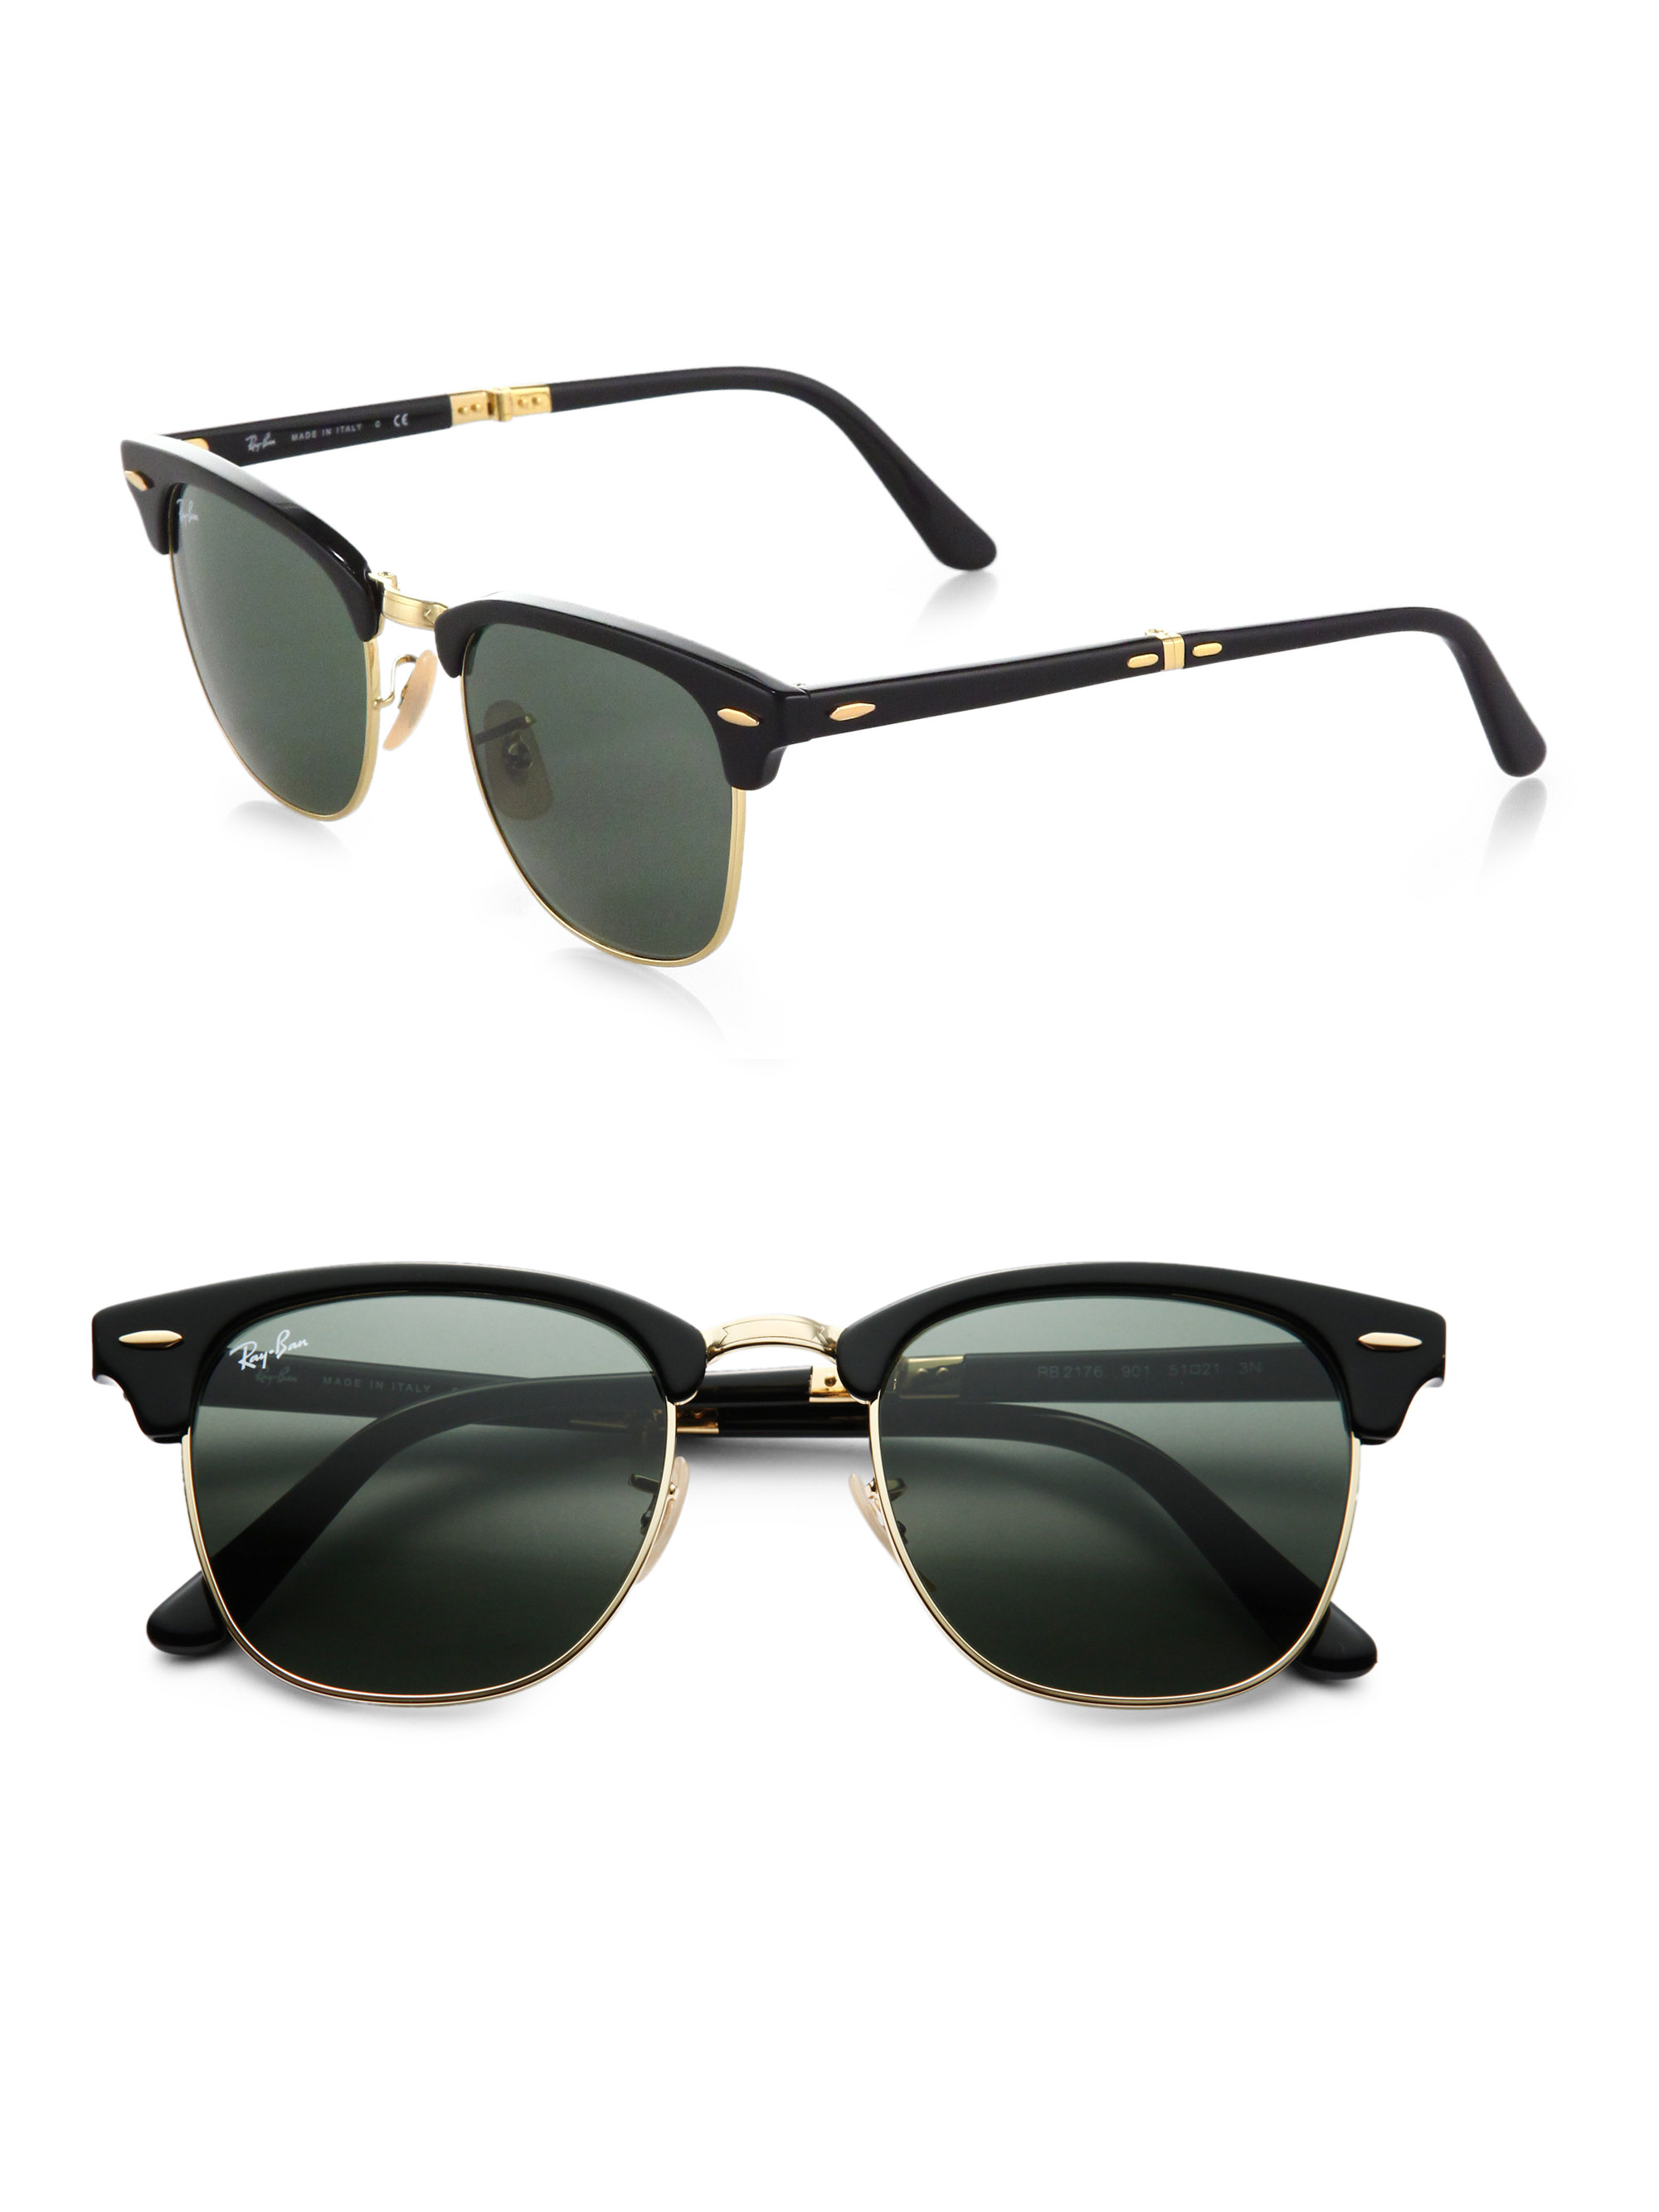 b5b6f55de3 Ray-Ban Folding Clubmaster Sunglasses in Black - Lyst